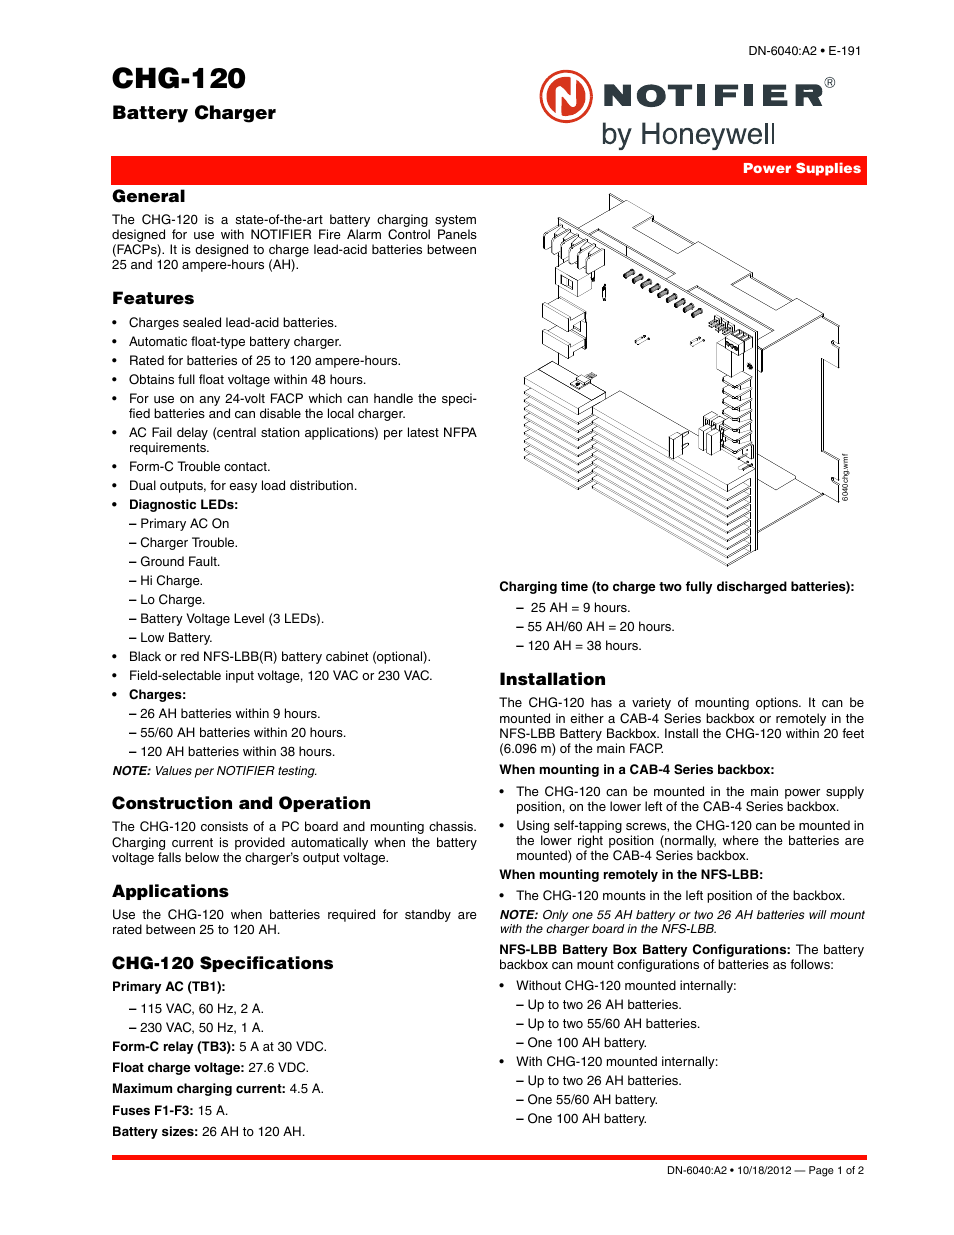 Notifier CHG-120 User Manual | 2 pages